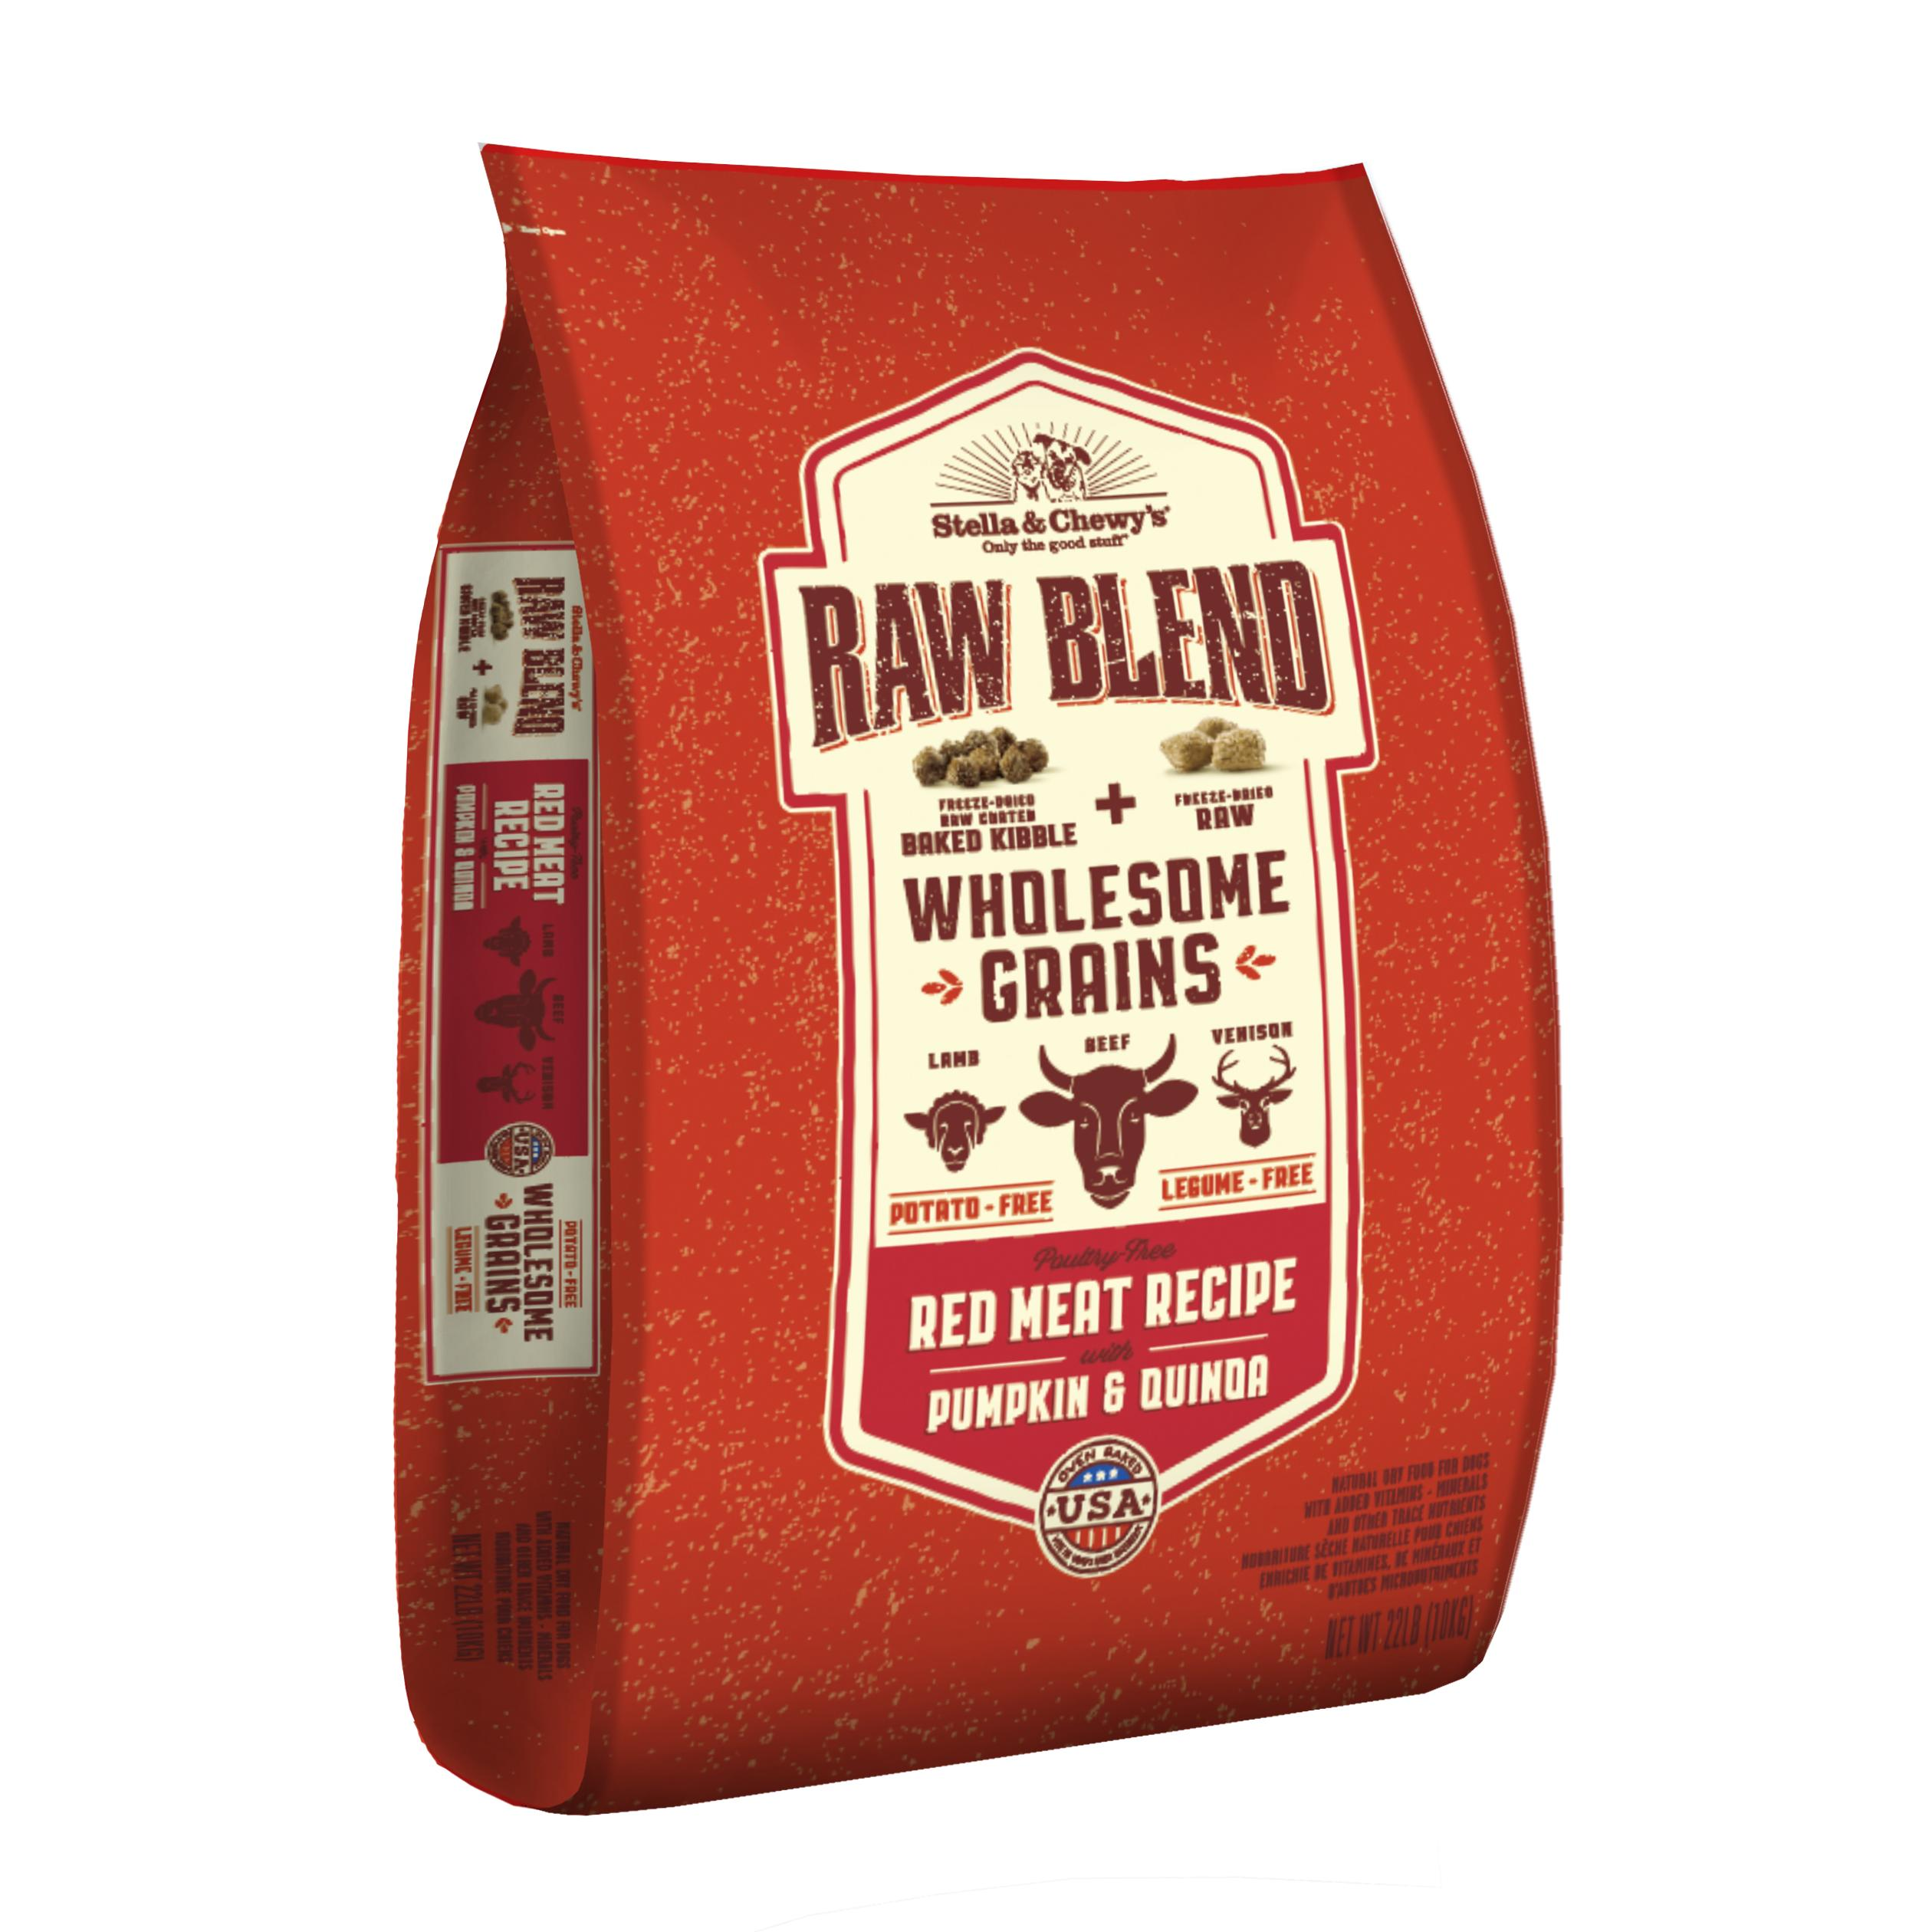 Stella & Chewy's Raw Blend Wholesome Grains Red Meat Recipe with Pumpkin & Quinoa Dry Dog Food, 22-lb